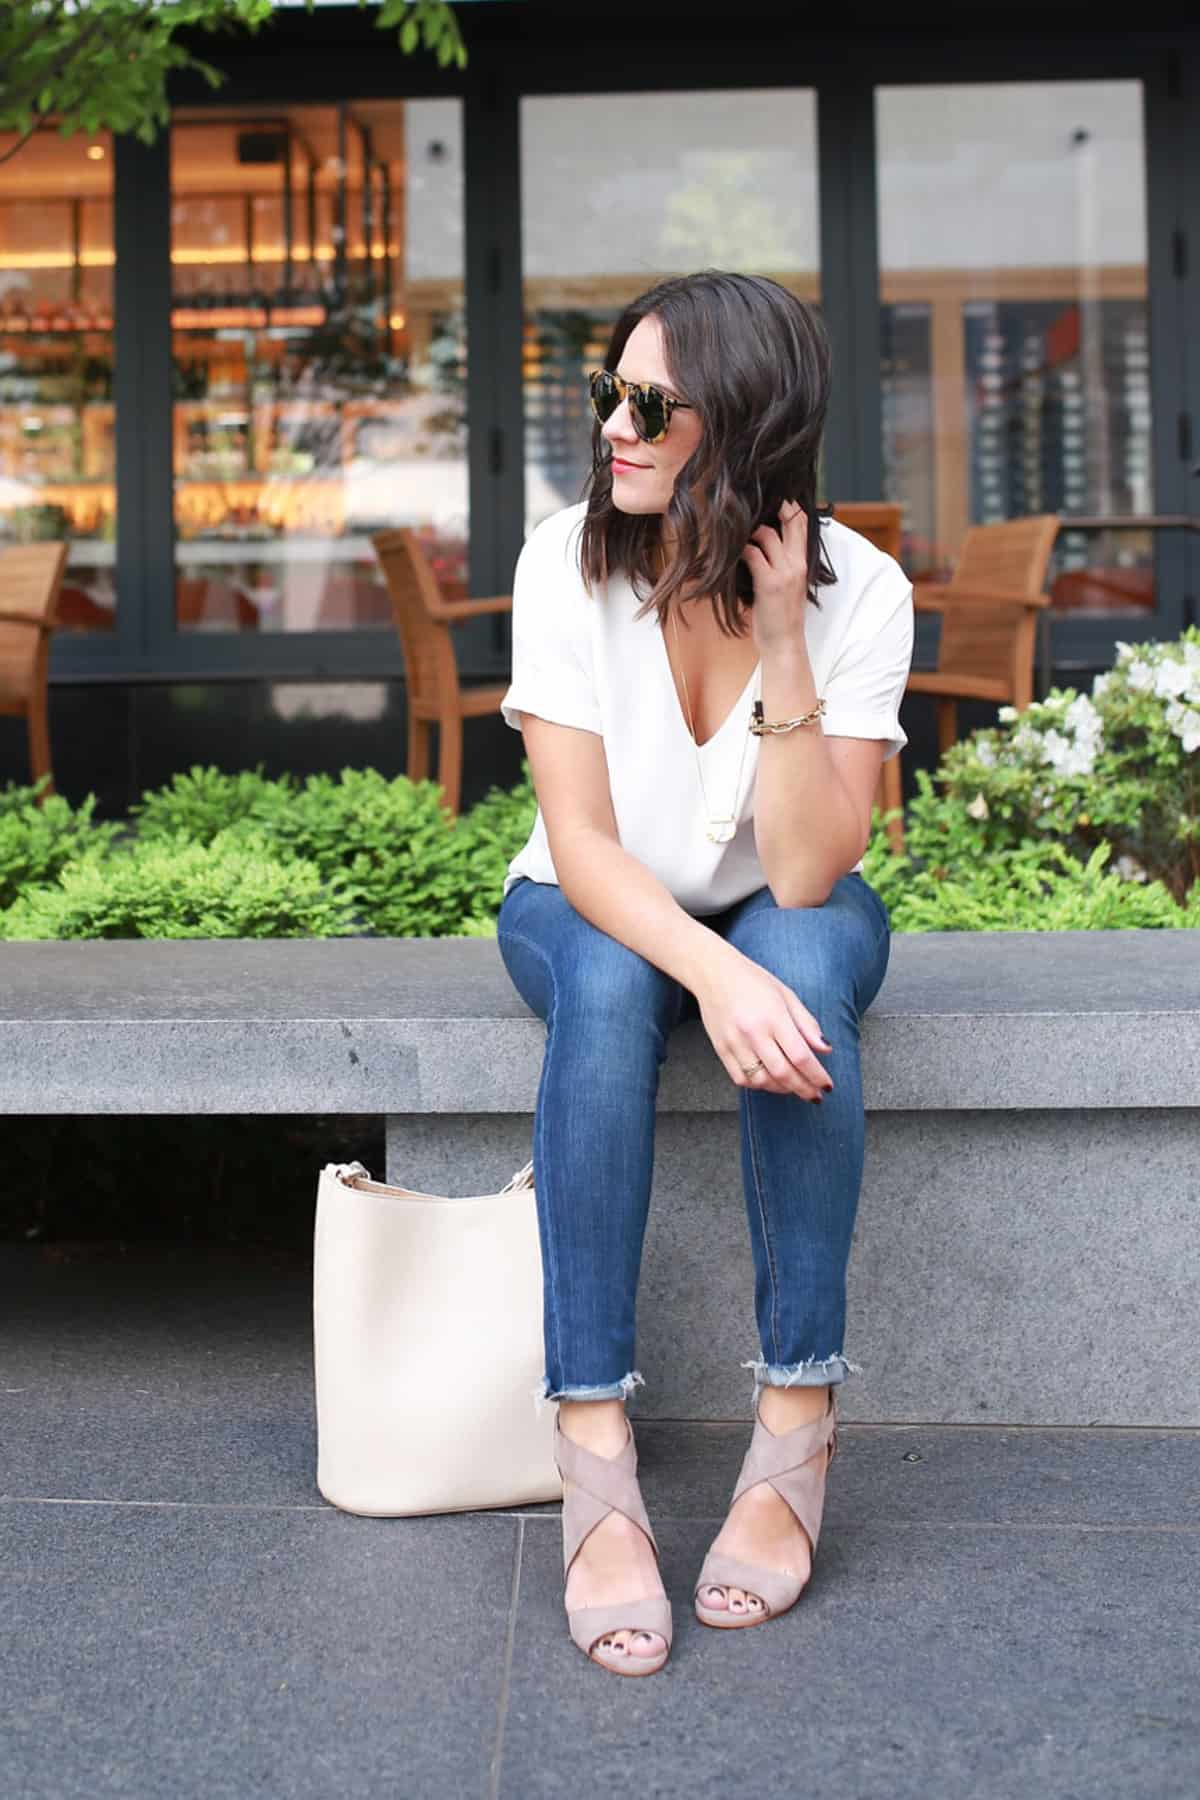 Fig and Olive Brunch, Cooper and Ella Blouse - Travel outfit ideas - My Style Vita @mystylevita